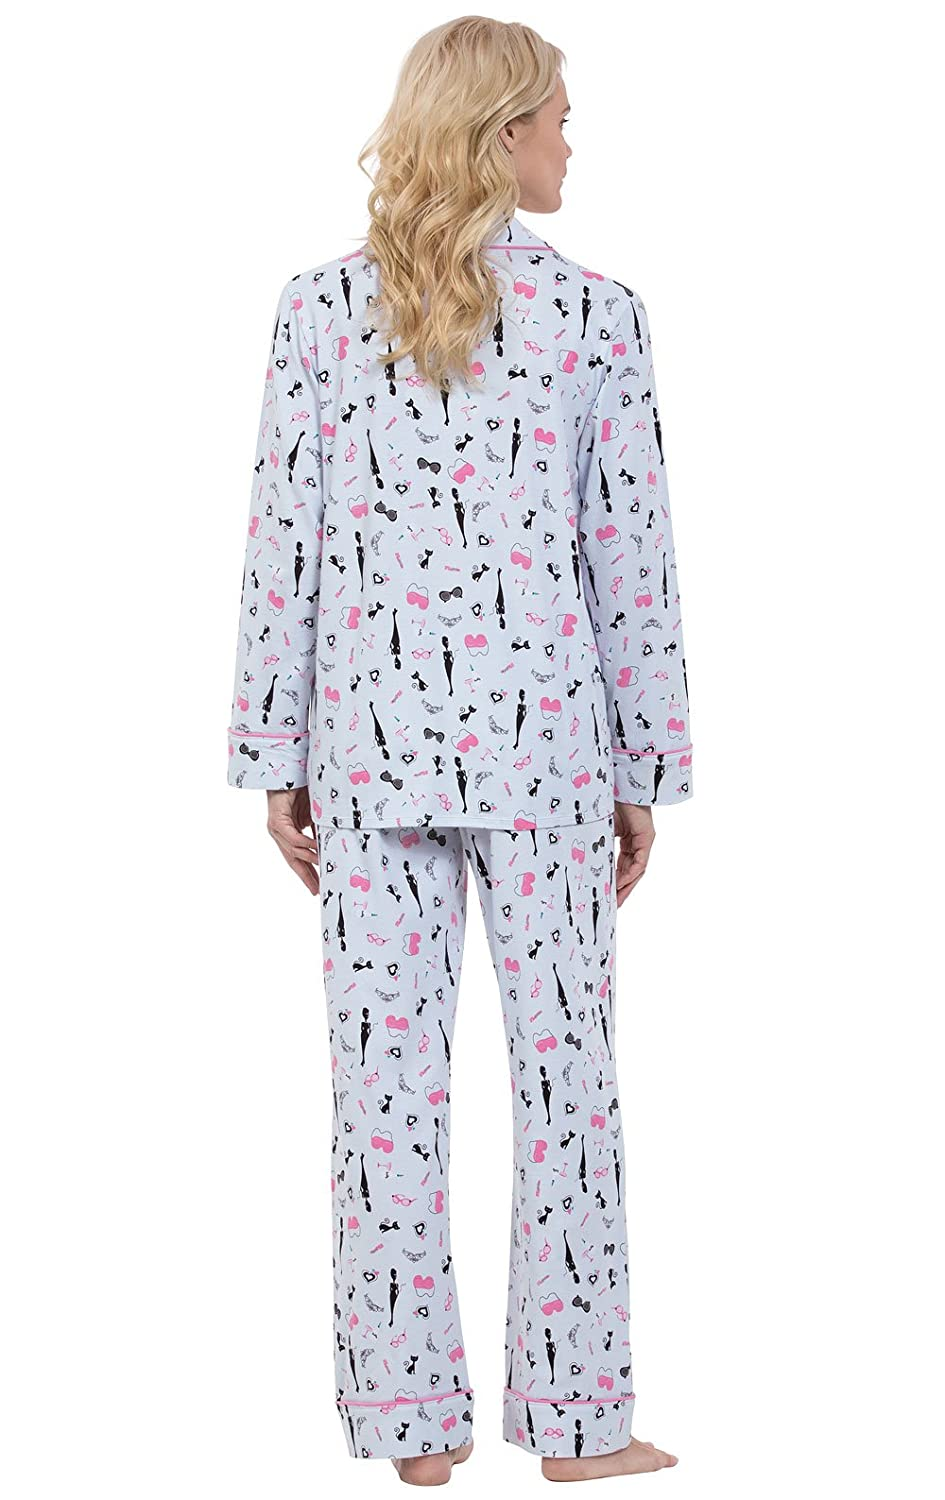 37c28d167aec PajamaGram Ladies PJs Sets Cotton - Women Sleepwear